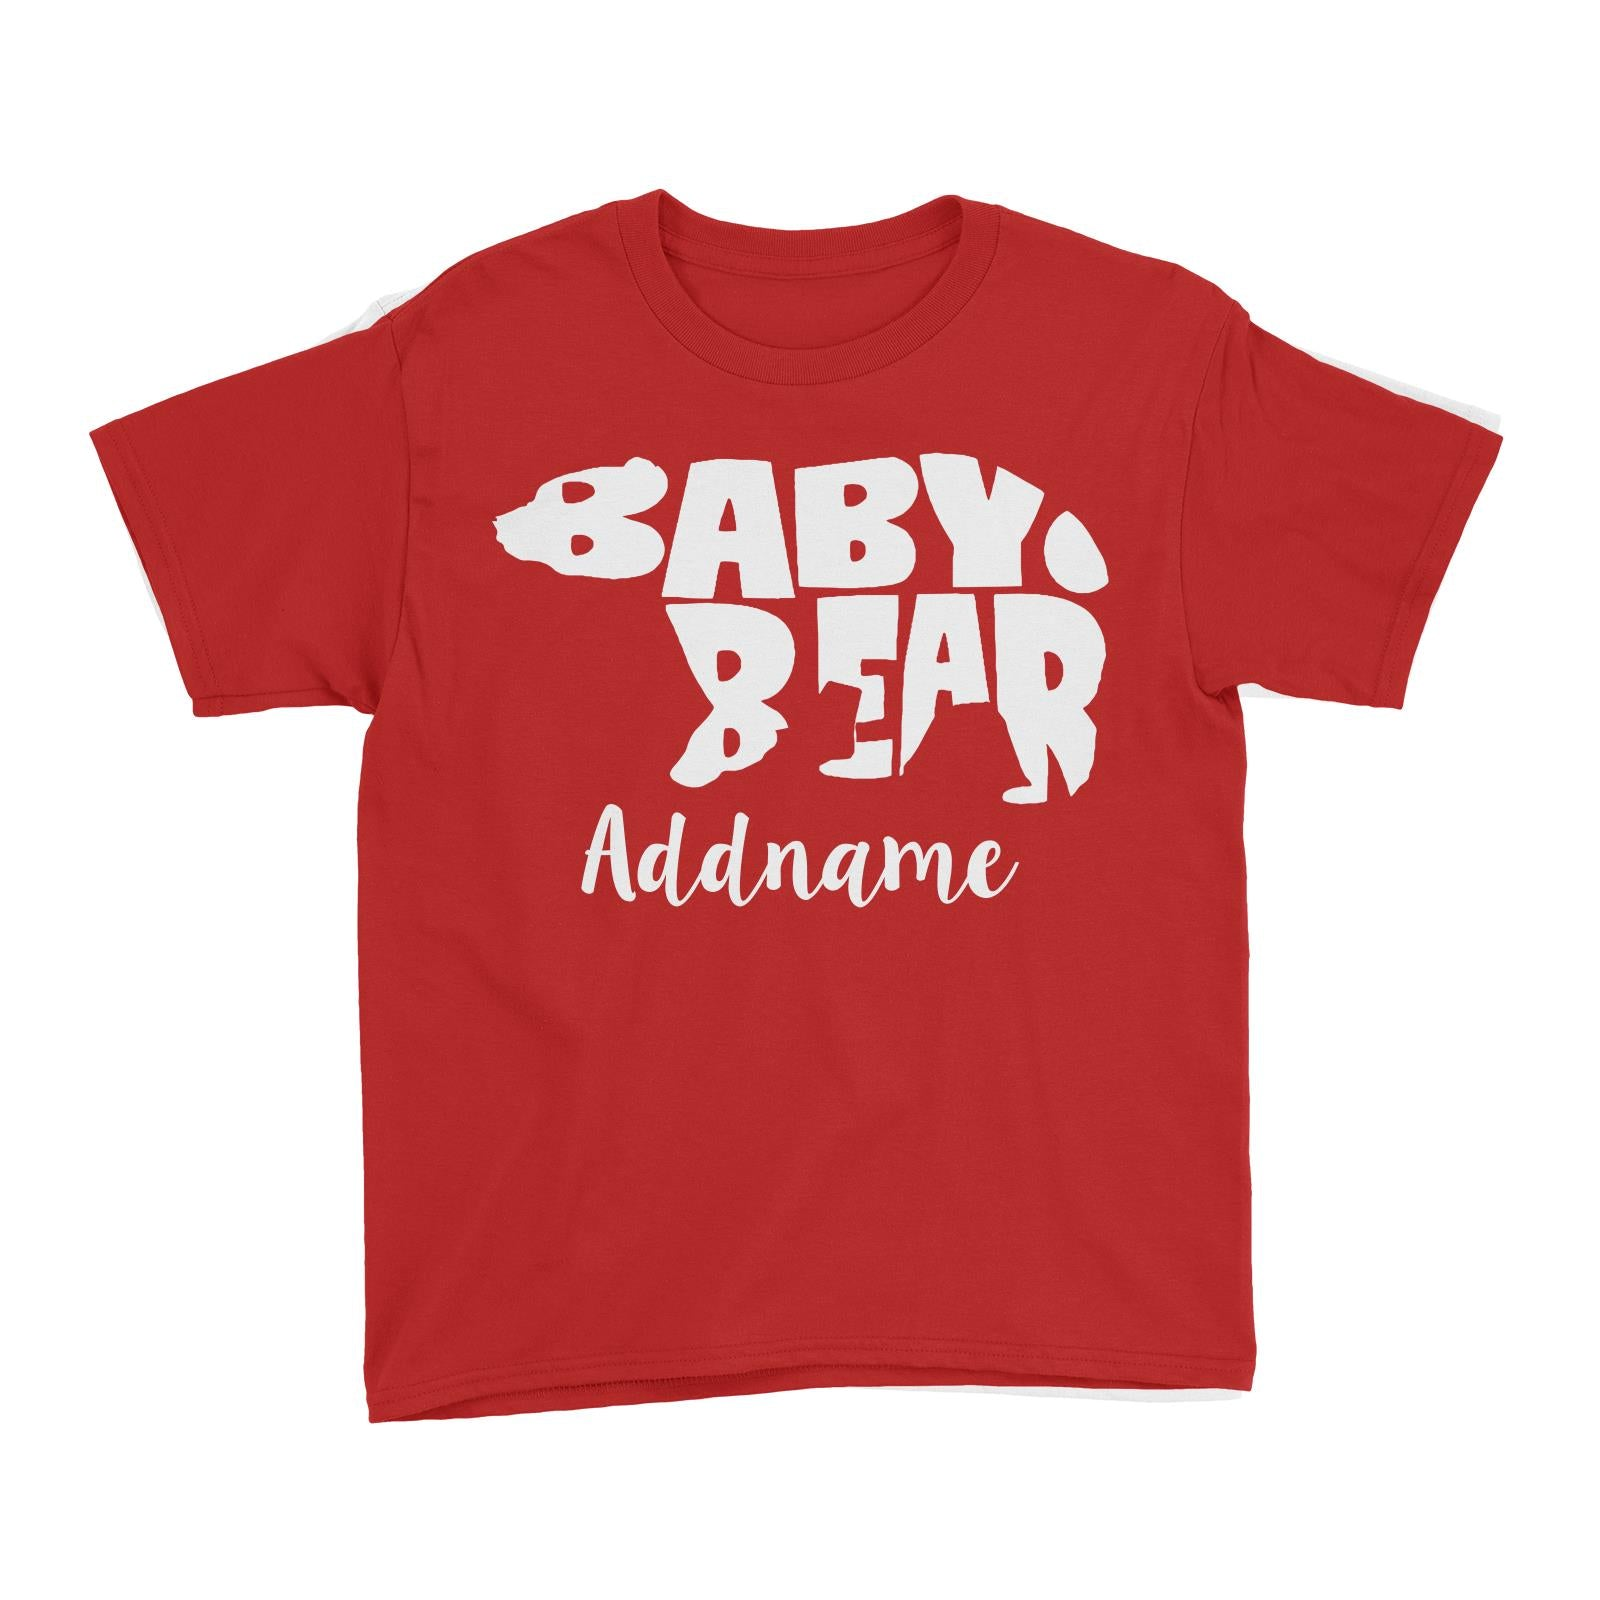 Baby Bear Silhouette Addname Kid's T-Shirt